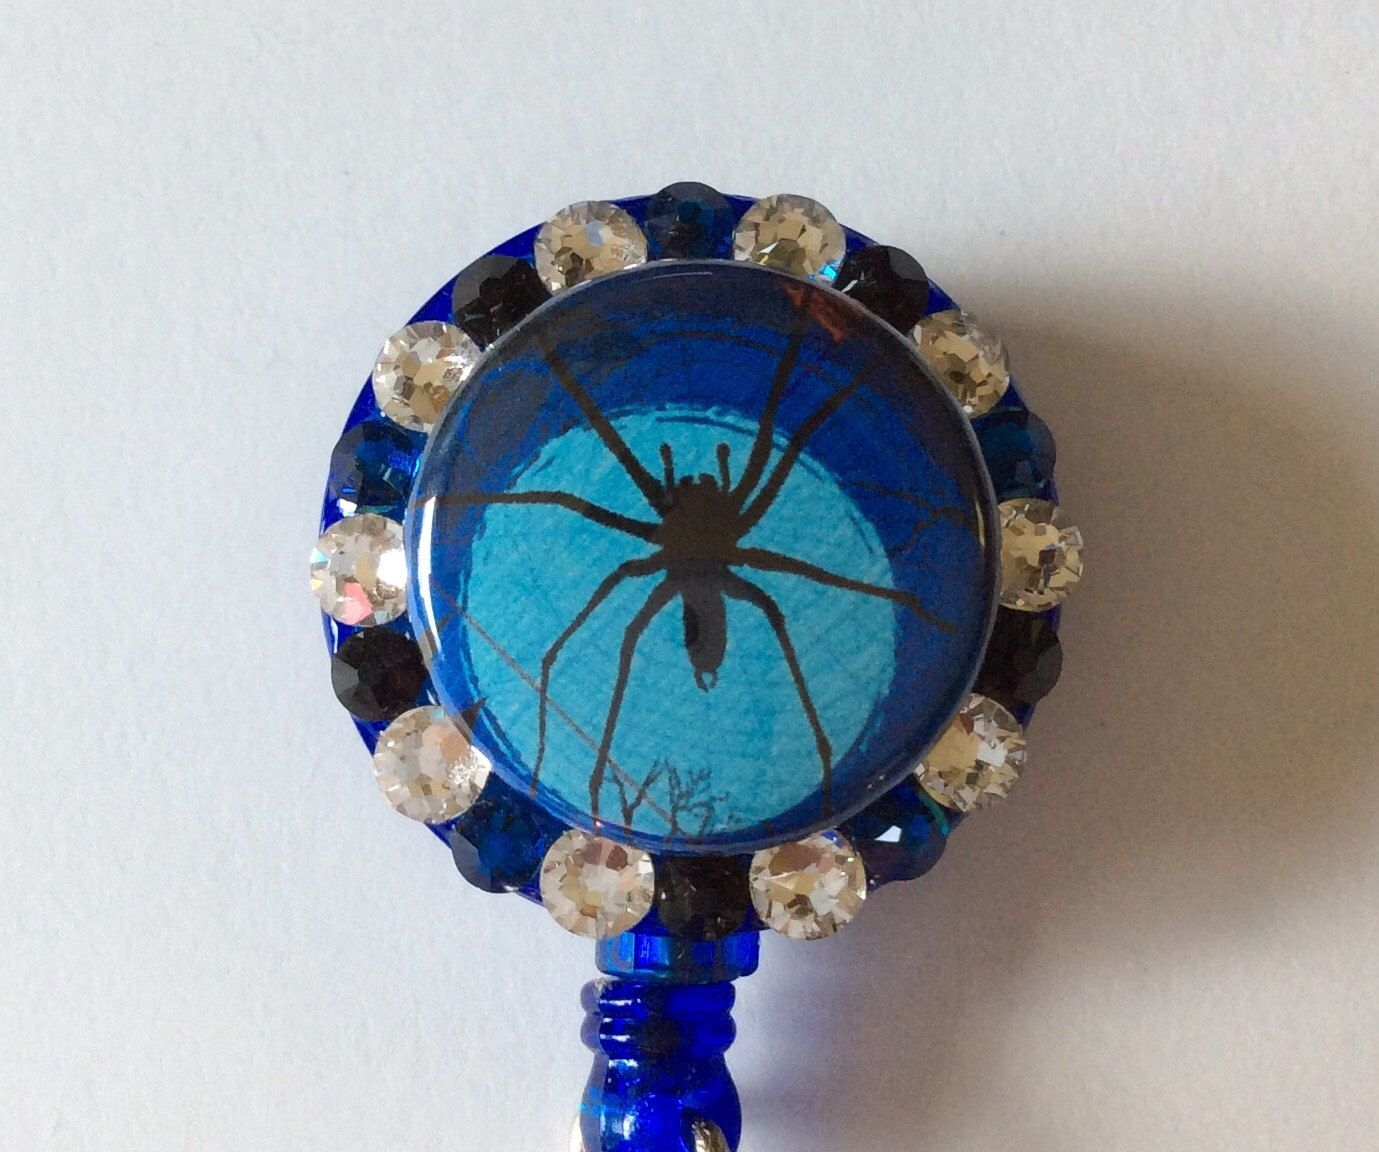 Halloween Spider Decorative Badge/ID Holder with Charms/Beads by Lindasbadgeboutique on Etsy